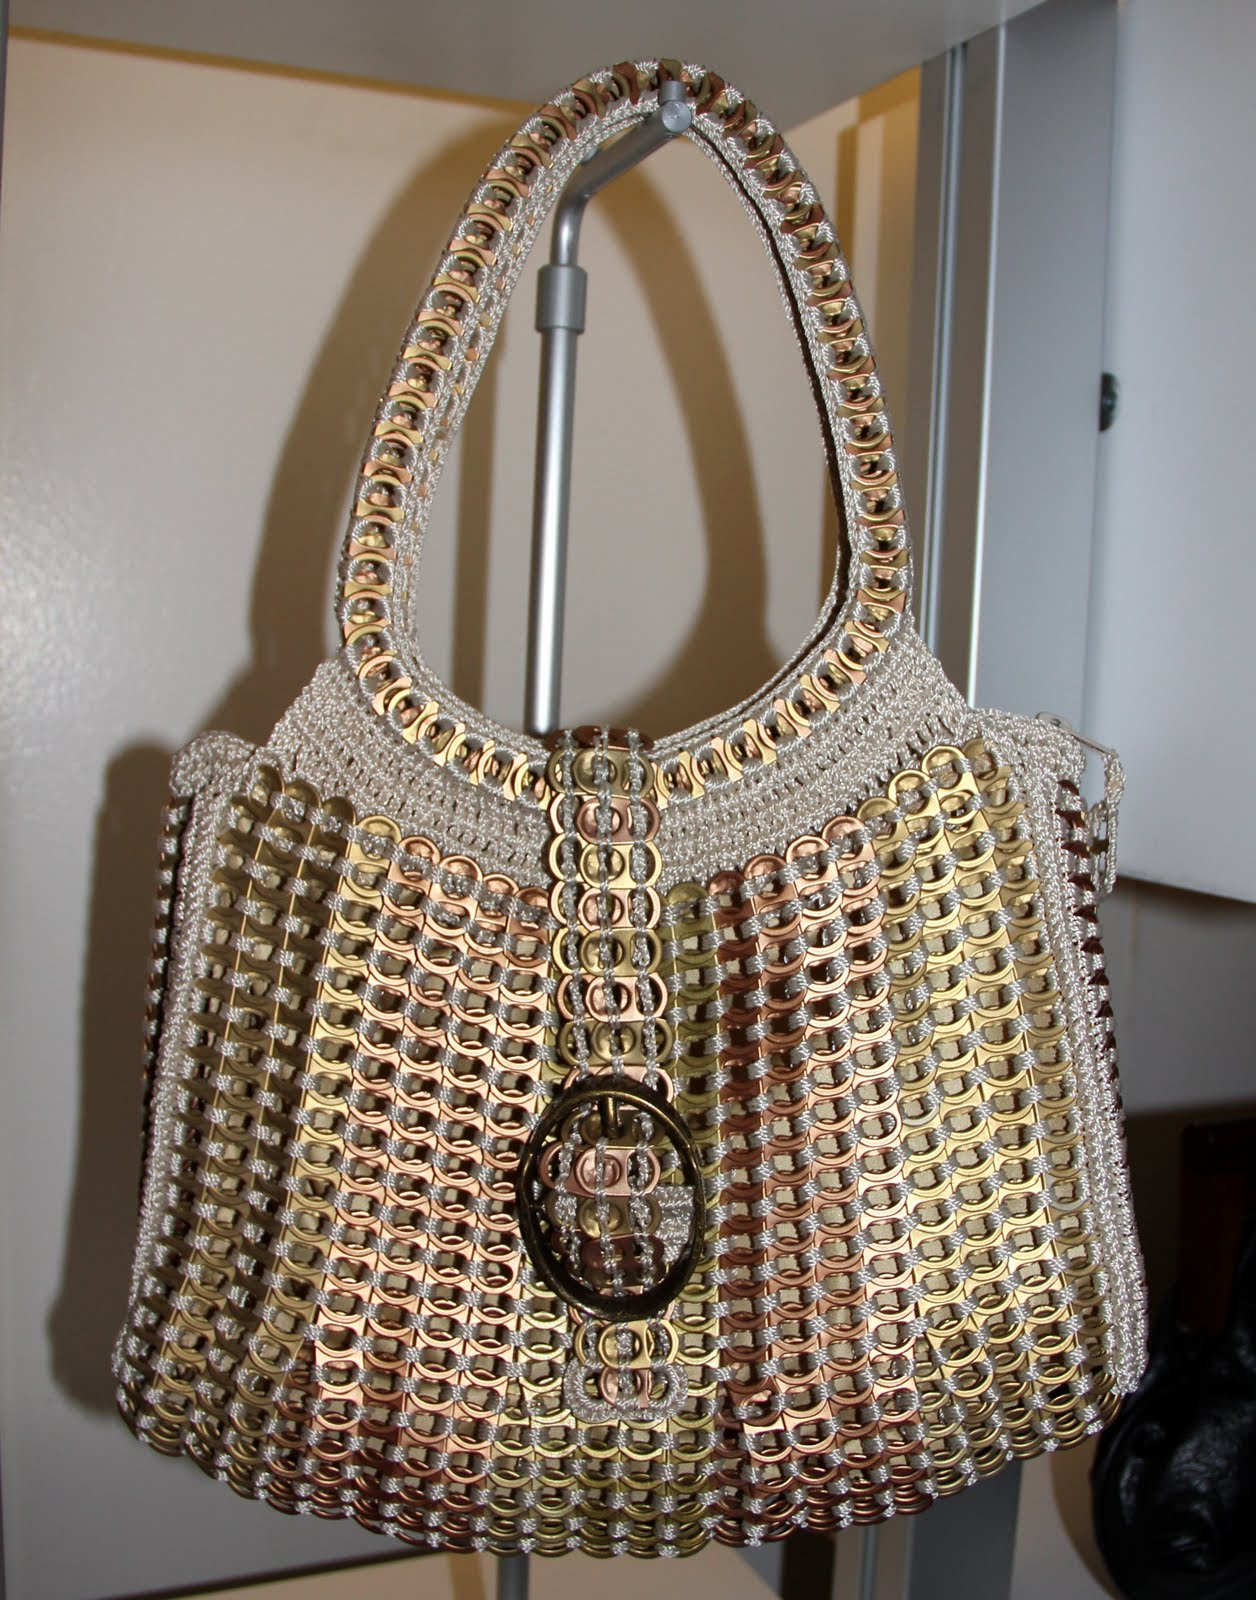 afcecd003f The 5th Annual INDEPENDENT HANDBAG DESIGNER AWARDS